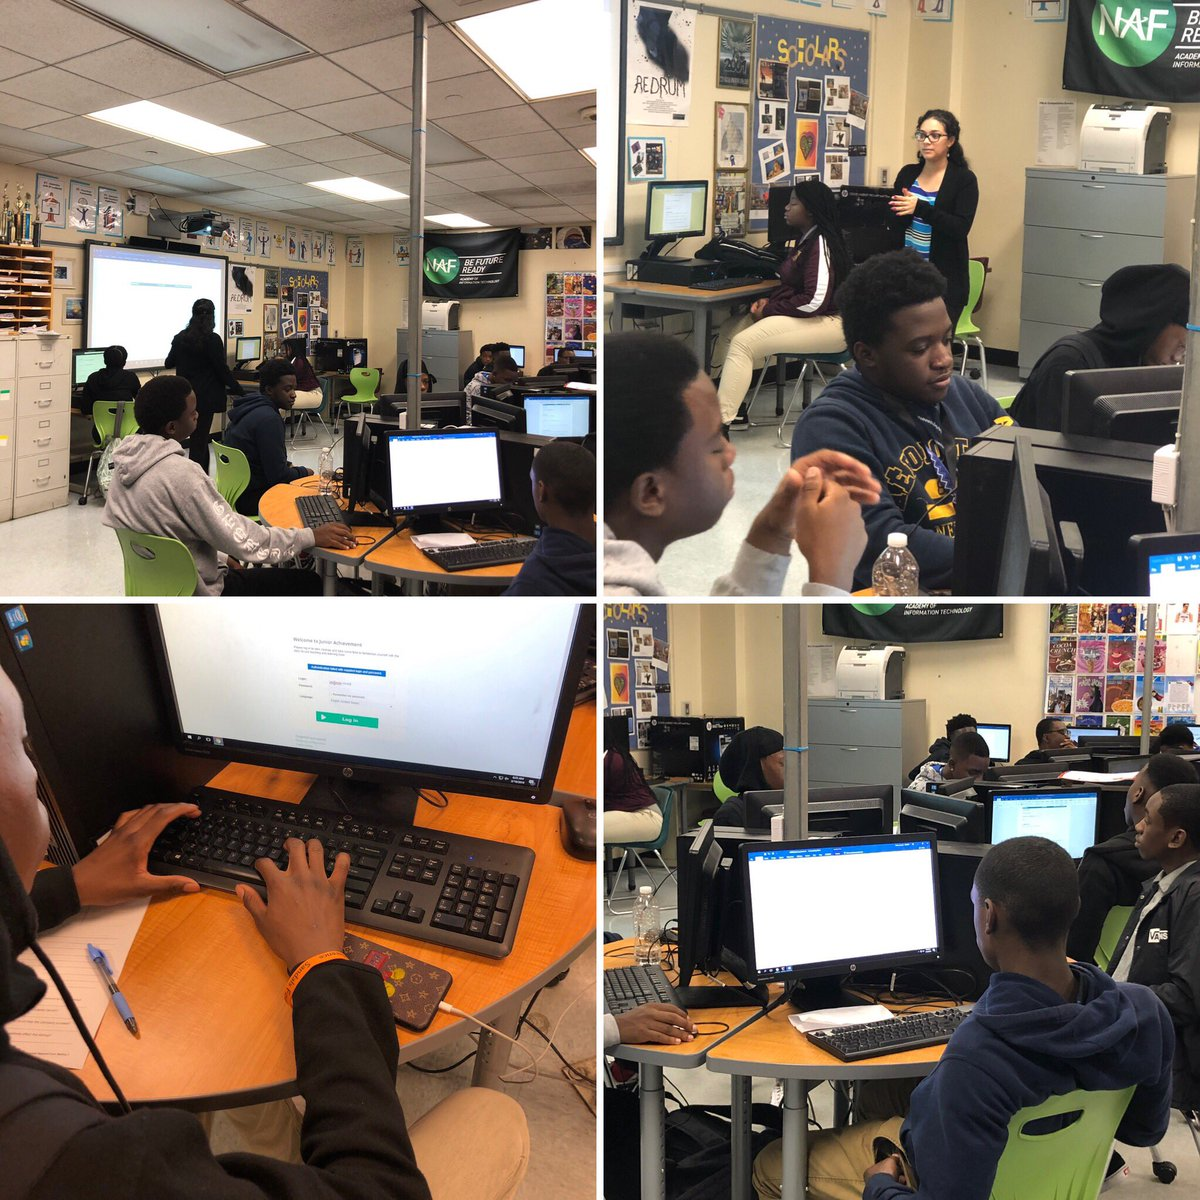 Today, students from @TurnerTechHS are working on their JA Company, thanks to a generous grant from the Frederick DeLuca Foundation and a classroom #volunteer from @WellsFargo! #jacompanyprogram #jacompany #entrepreneurlife #entrepreneurship #startup